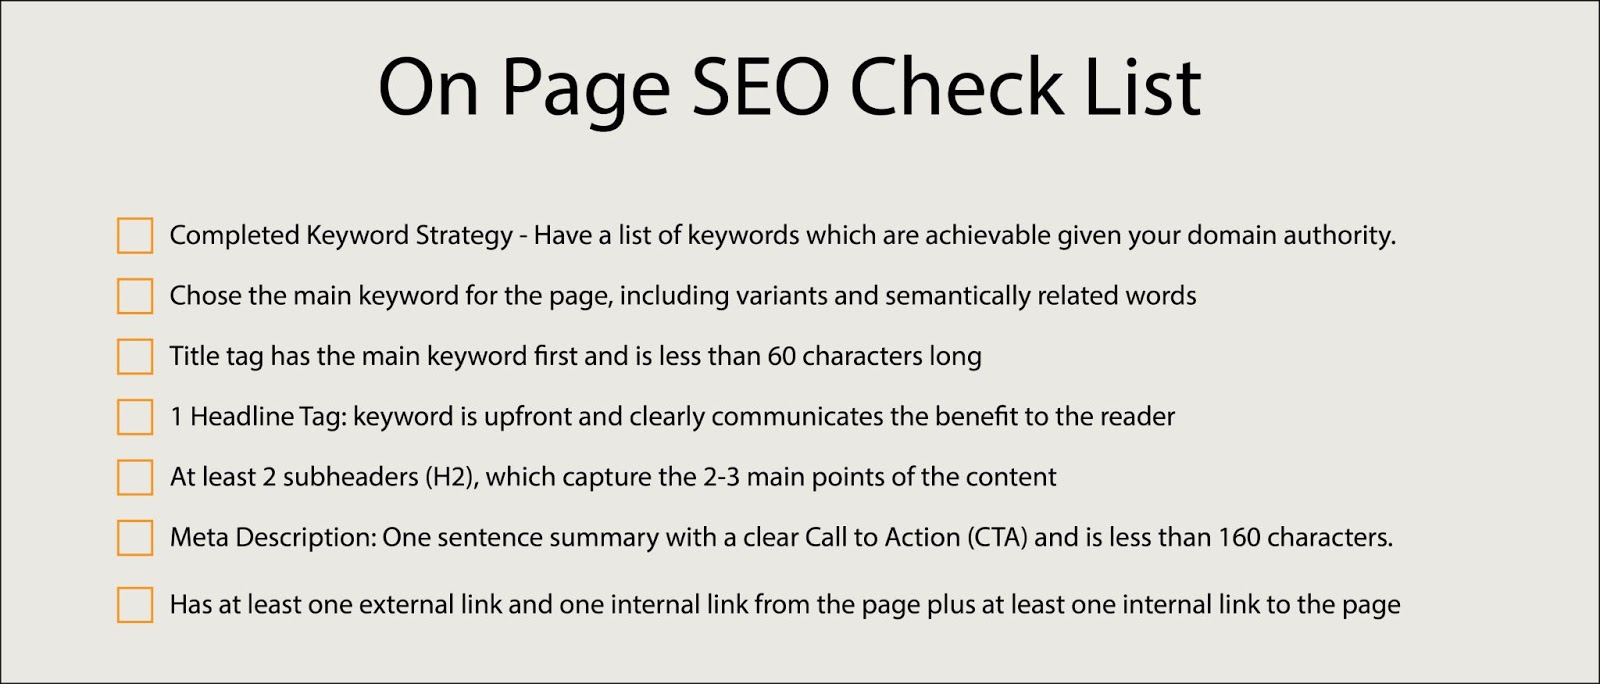 Small Business SEO Services On Page SEO checklist